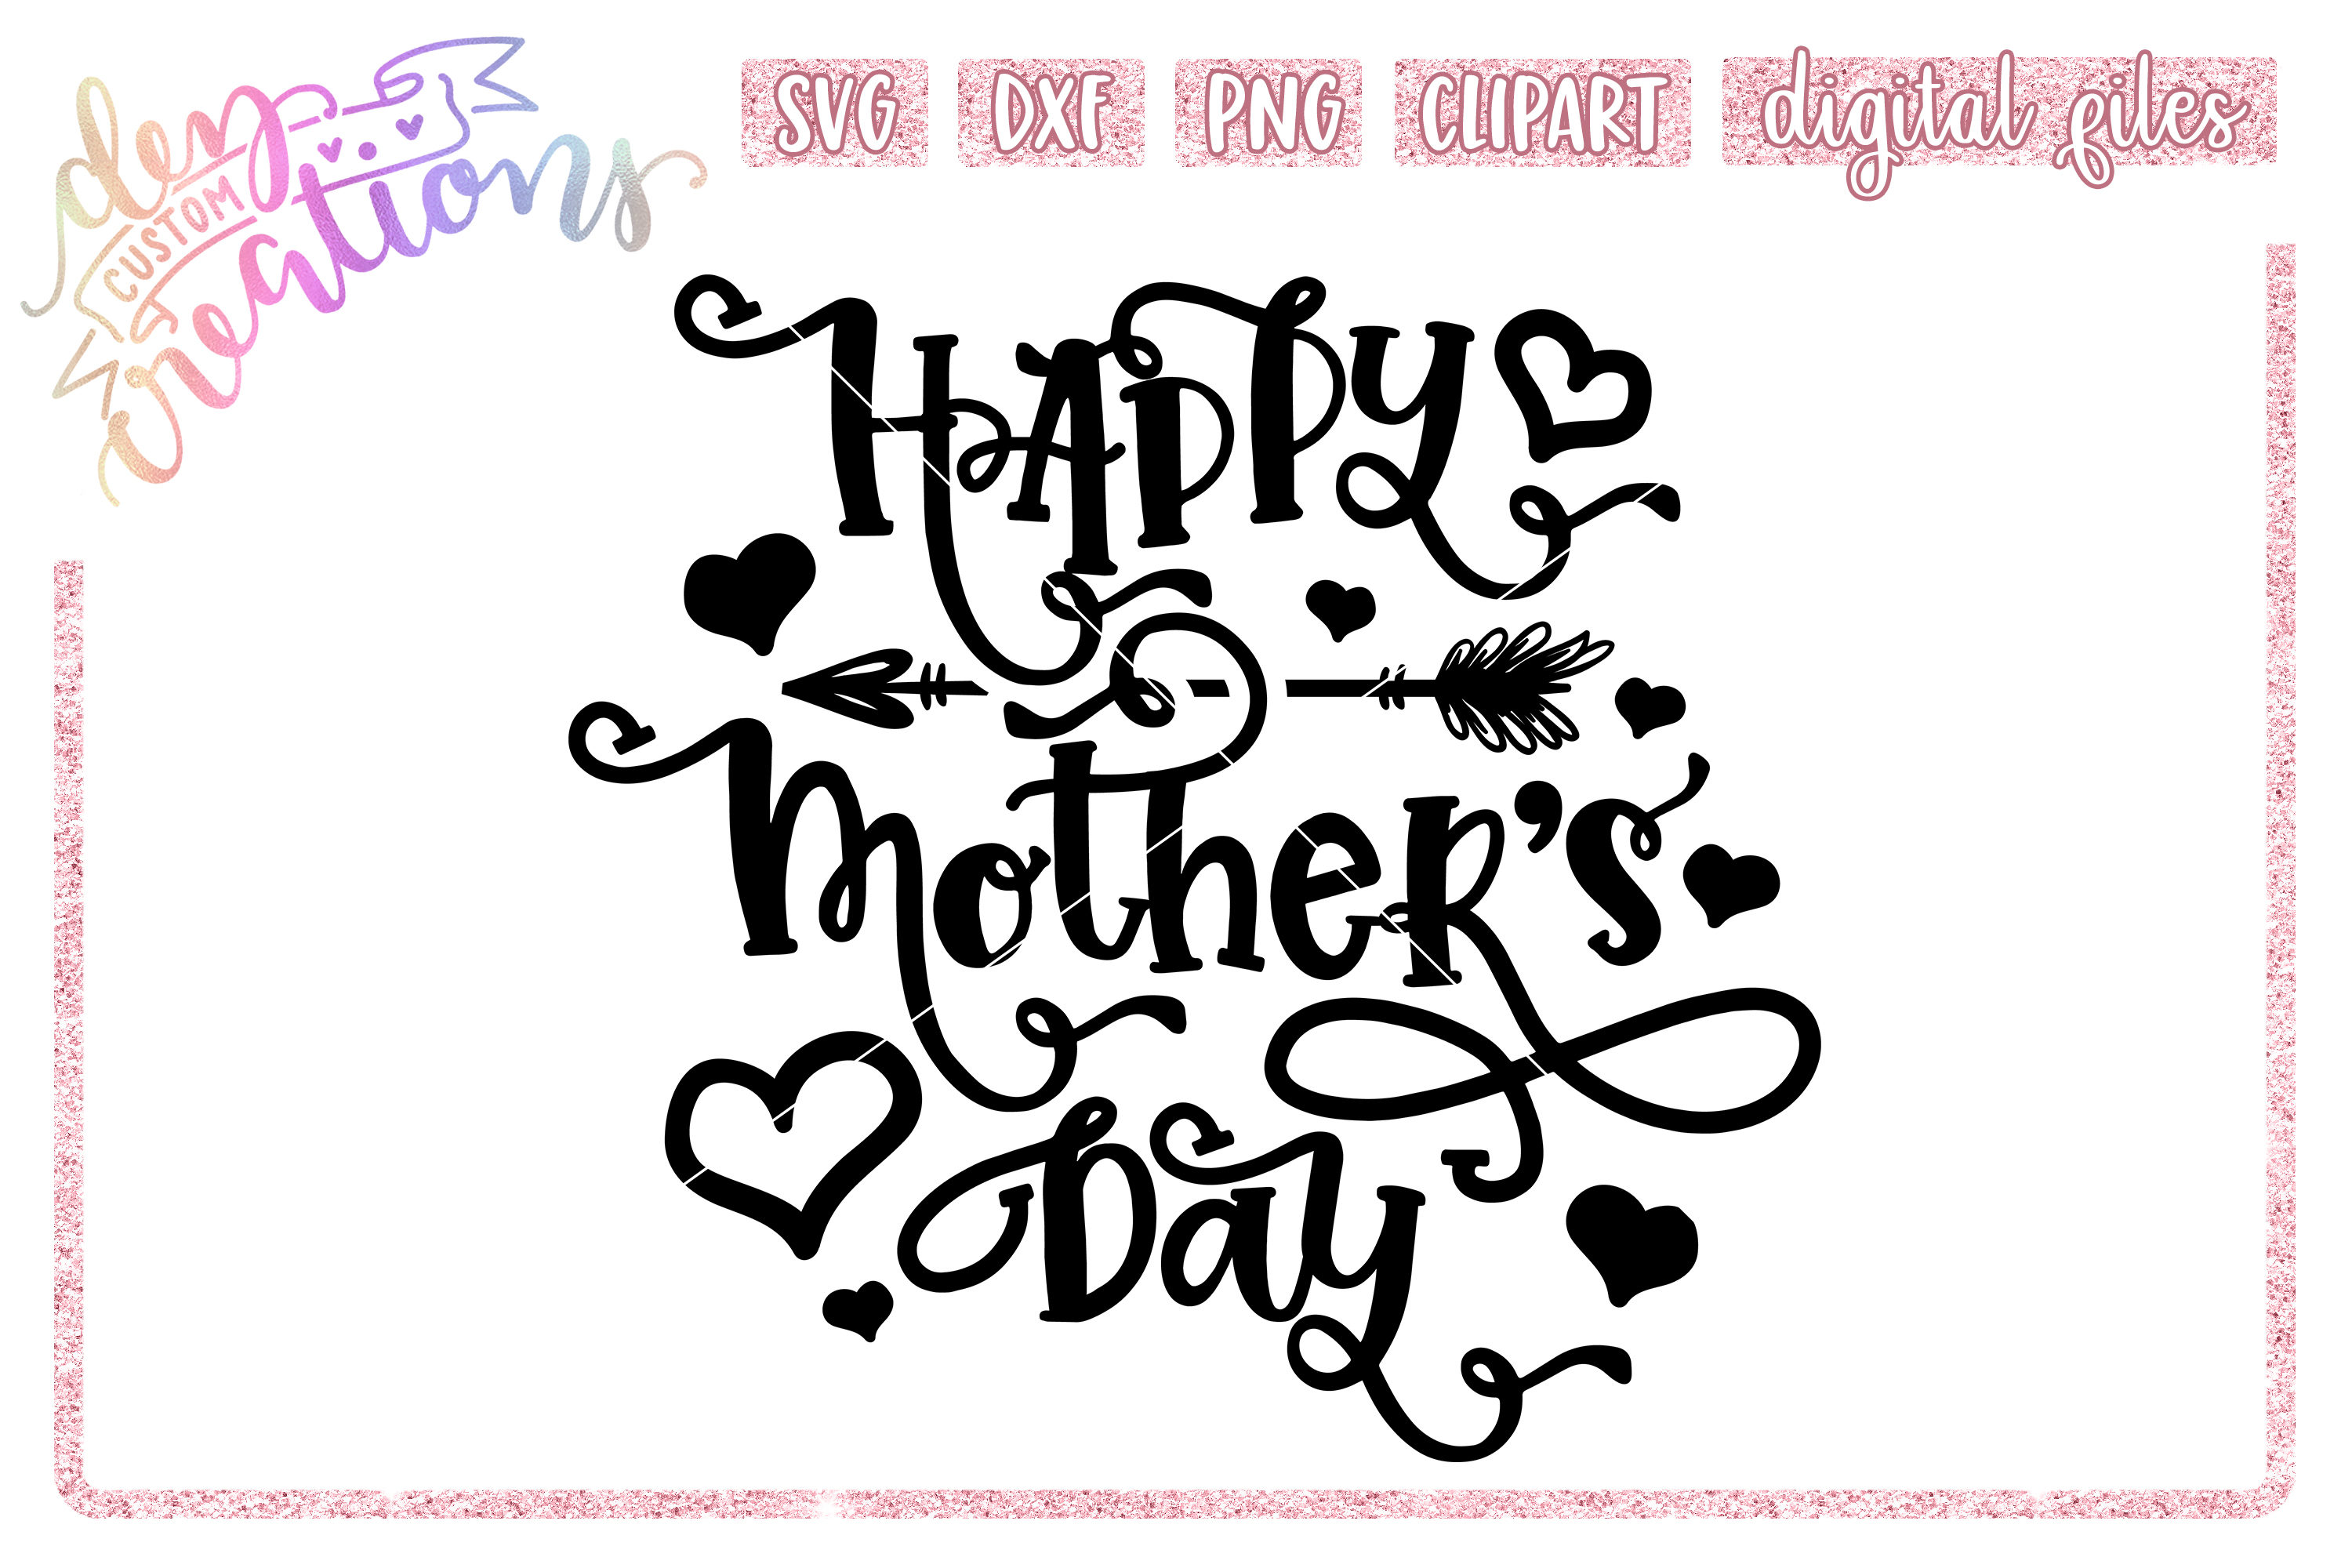 Happy Mother's Day - SVG DXF PNG - Digital Craft File example image 1